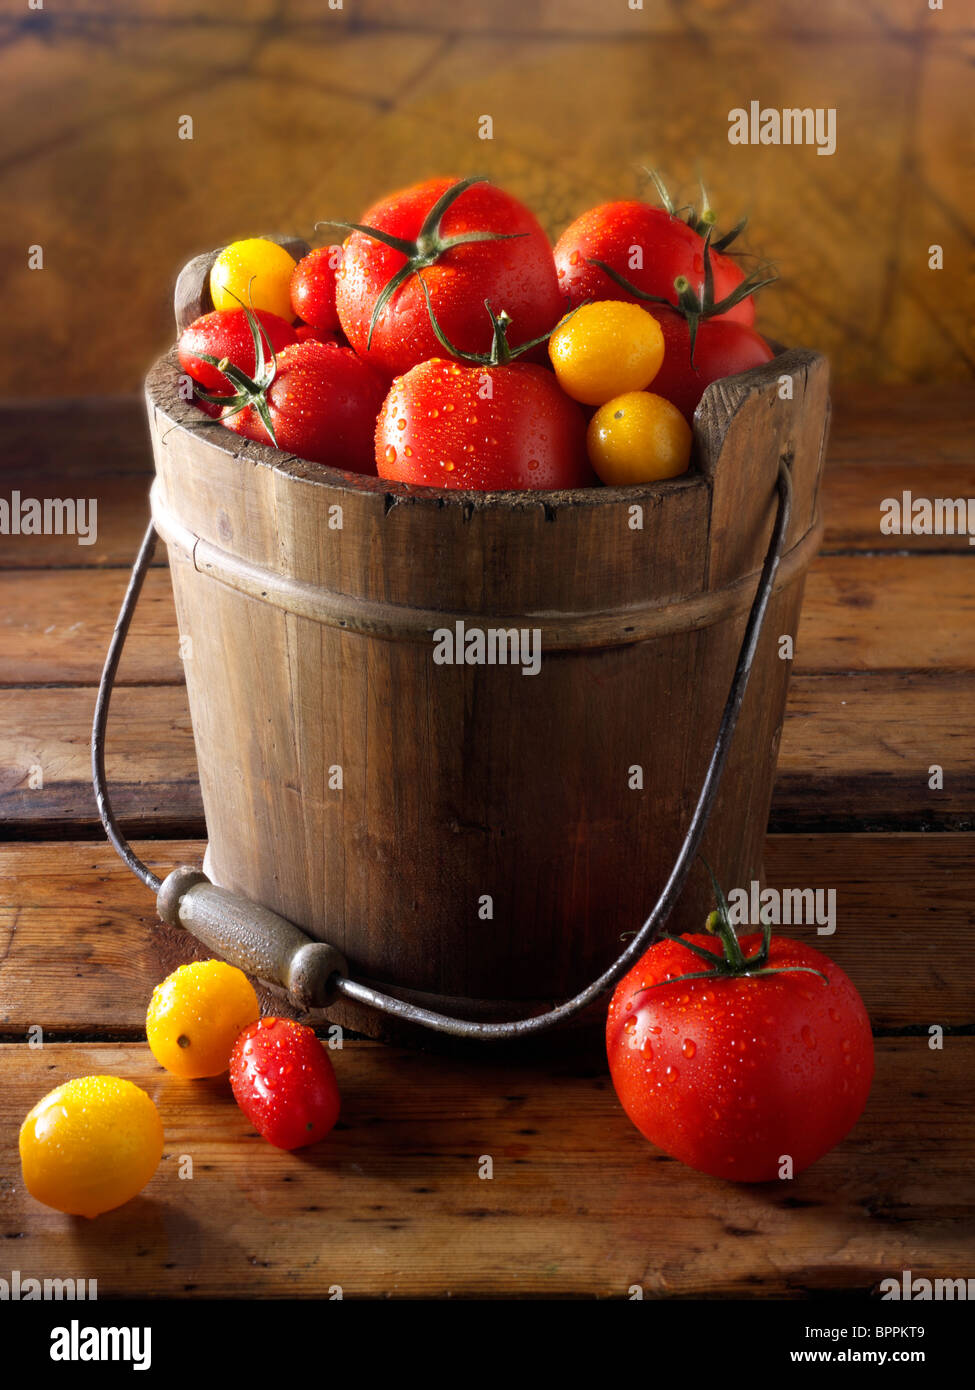 Mixed tomatoes photos, pictures & images - Stock Image